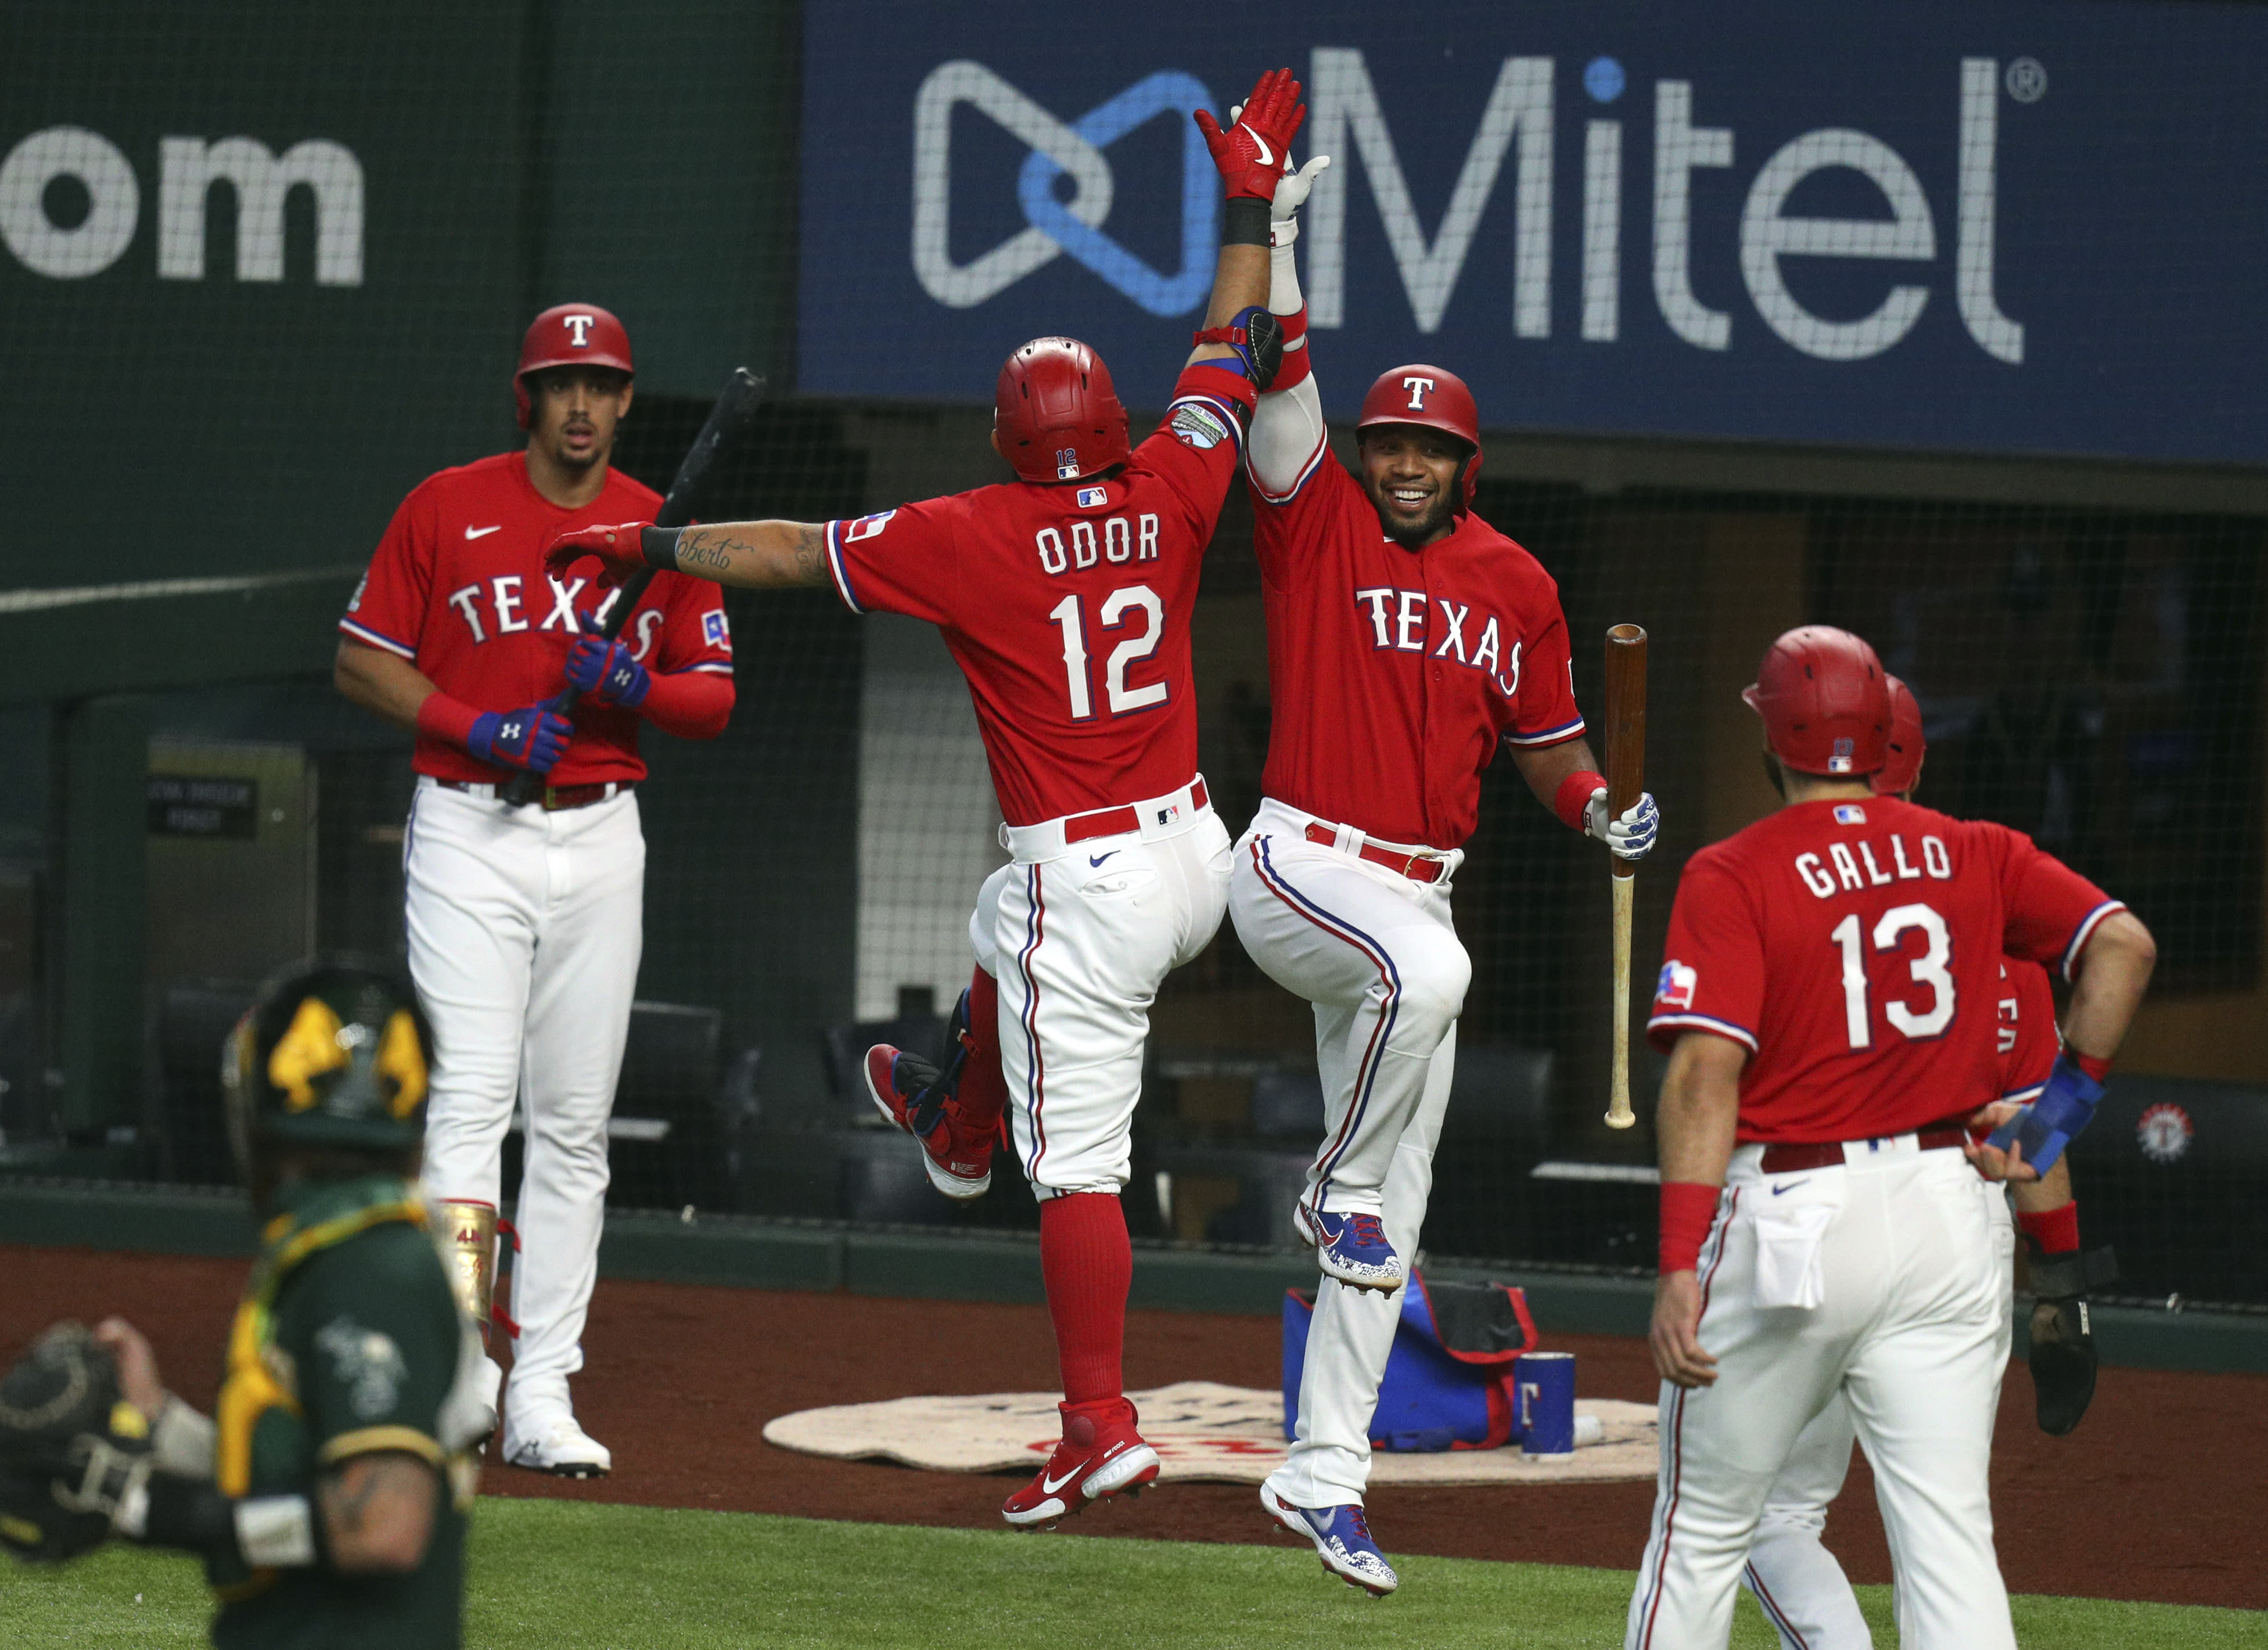 Texas Rangers Rougned Odor (12) celebrates with Elvis Andrus (1)after a three-run home run in the first inning against the Oakland Athletics in a baseball game Saturday, Sept. 12, 2020 in Arlington, Texas. (AP Photo/Richard W. Rodriguez)